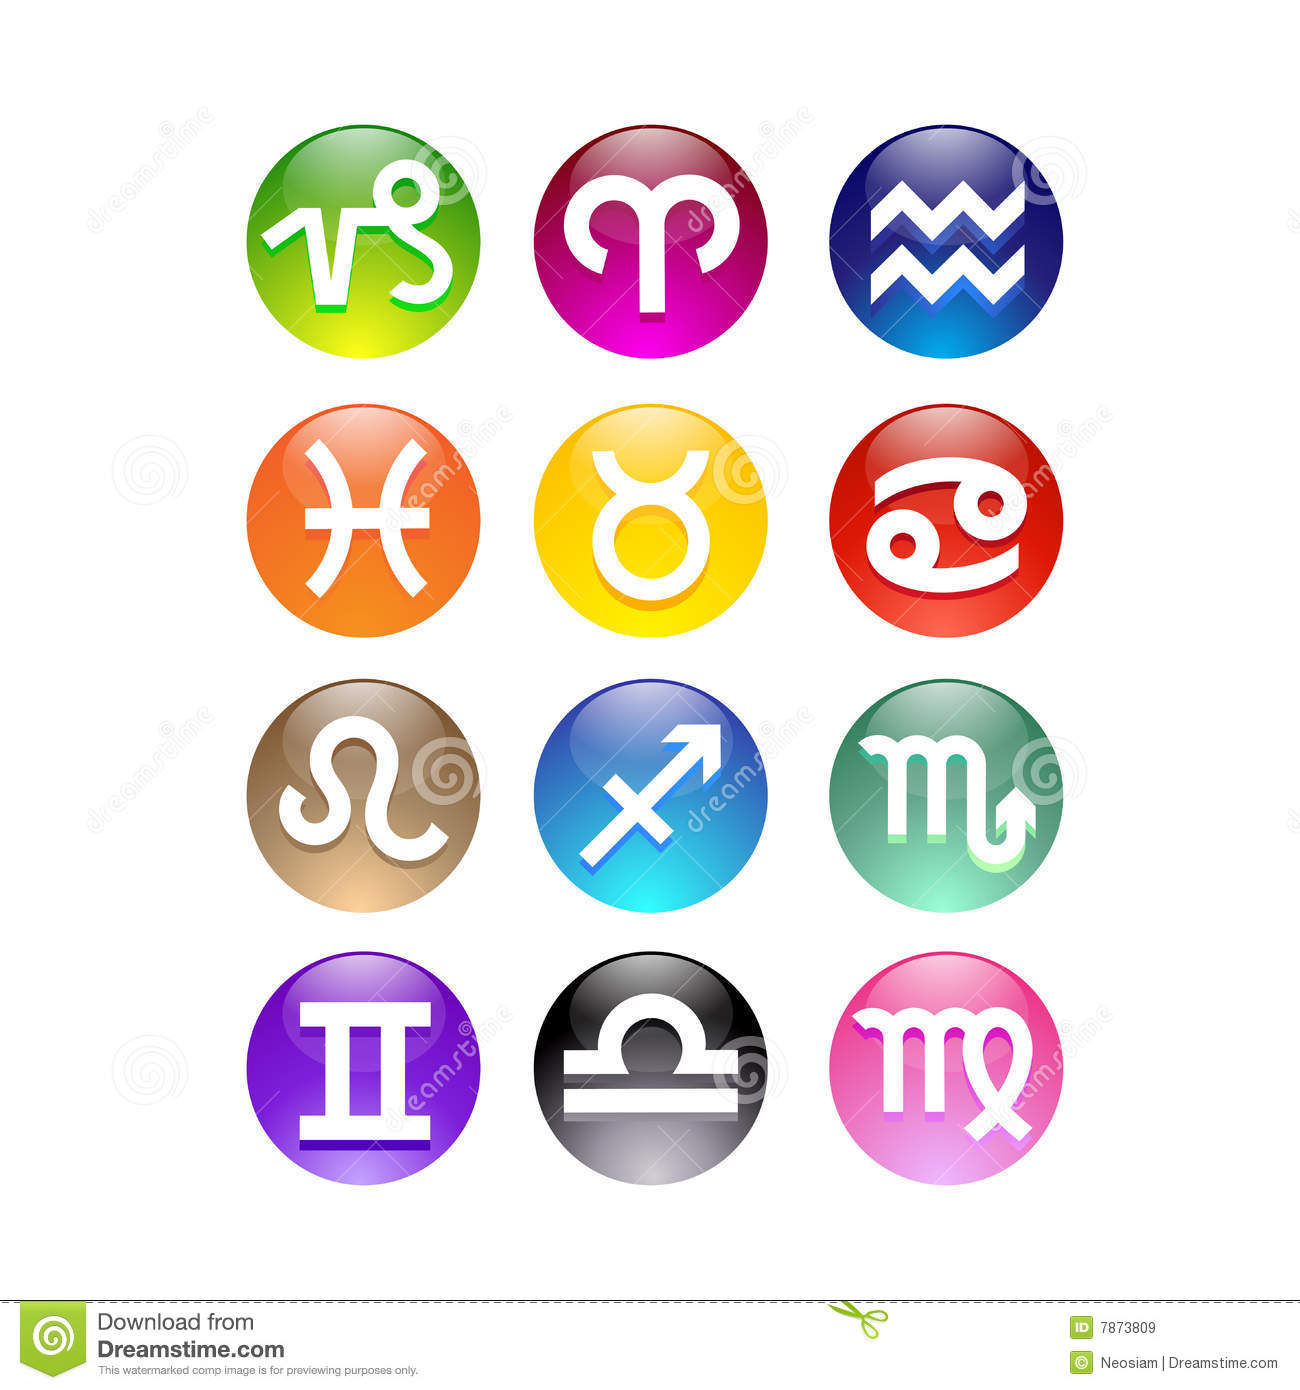 Zodiac Sign clipart #8, Download drawings